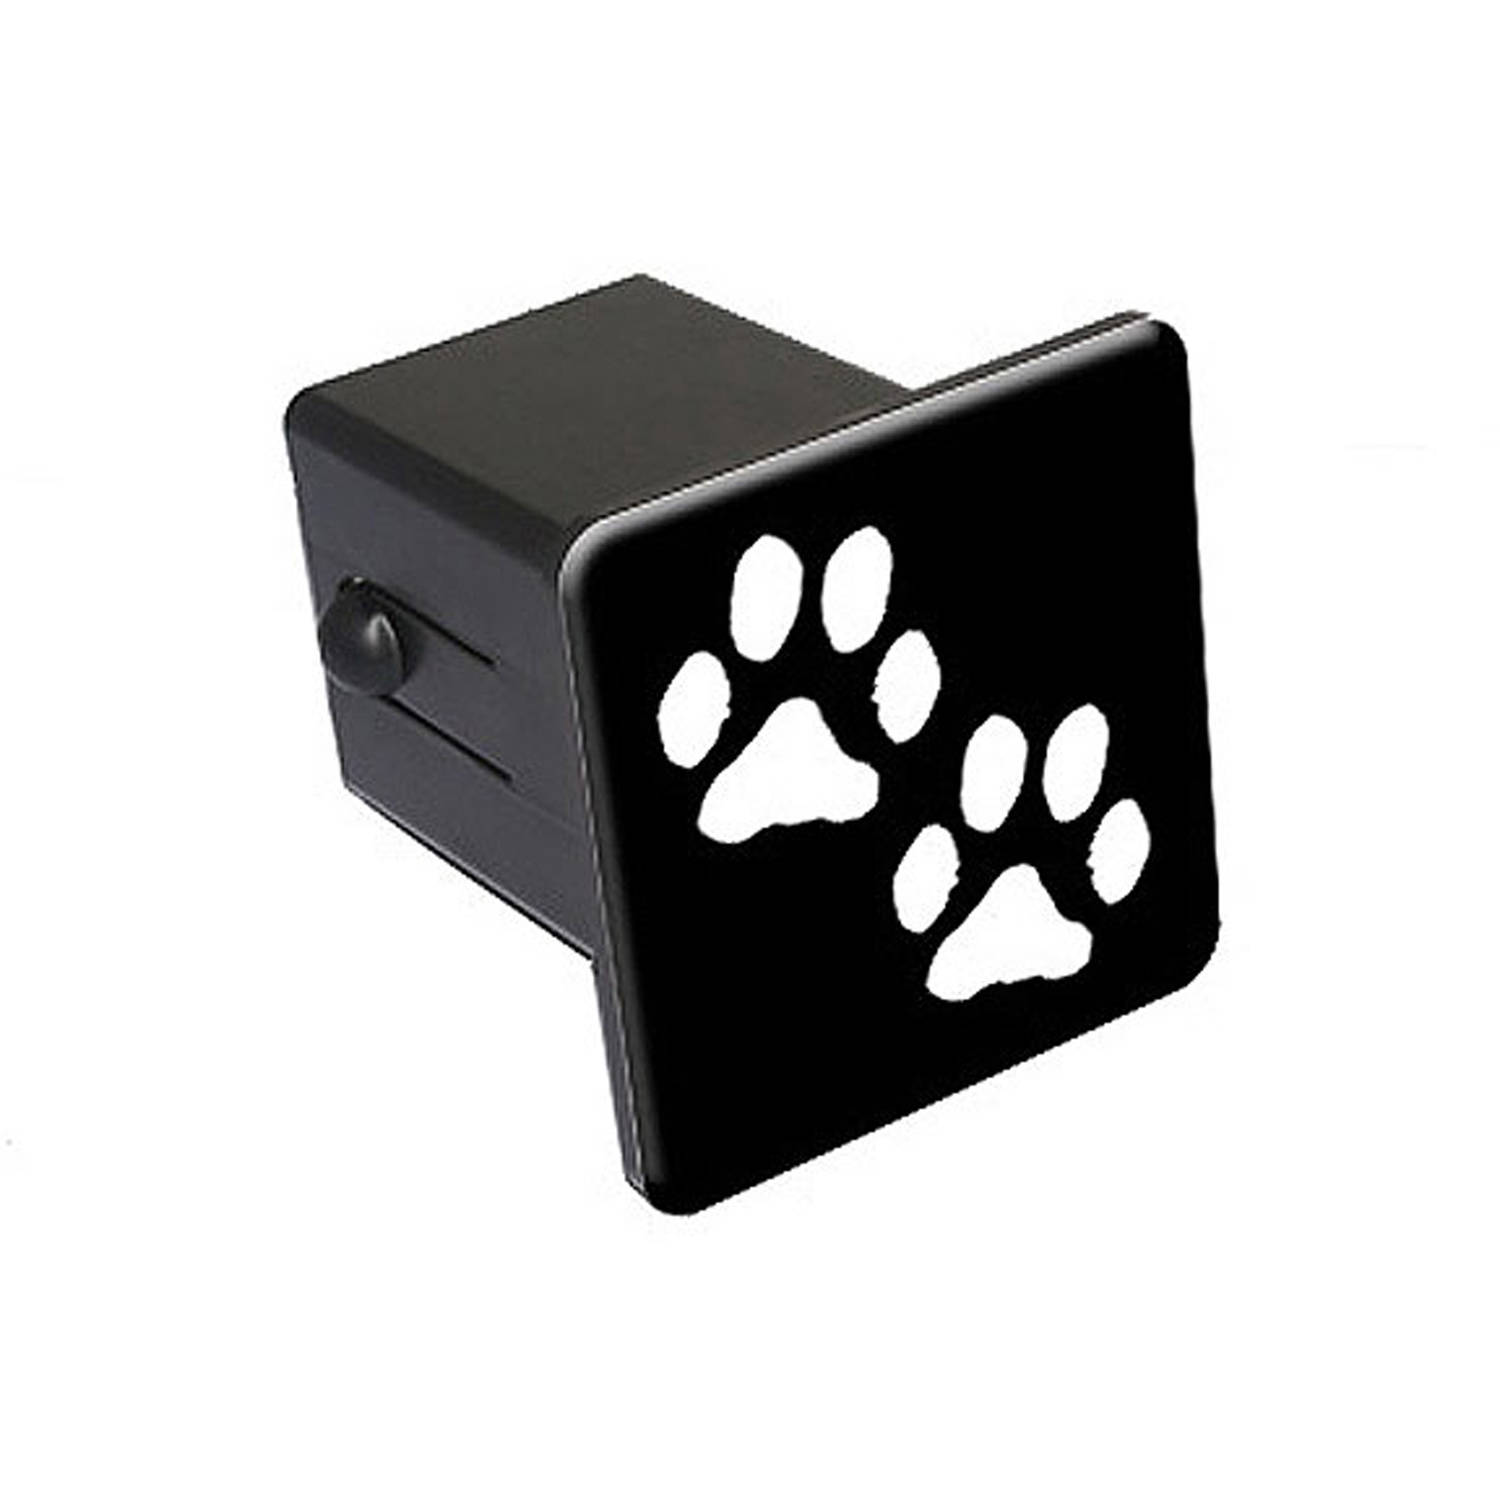 2 Tow Trailer Hitch Cover Plug Insert Graphics and More My Cat Ate Your Honor Student